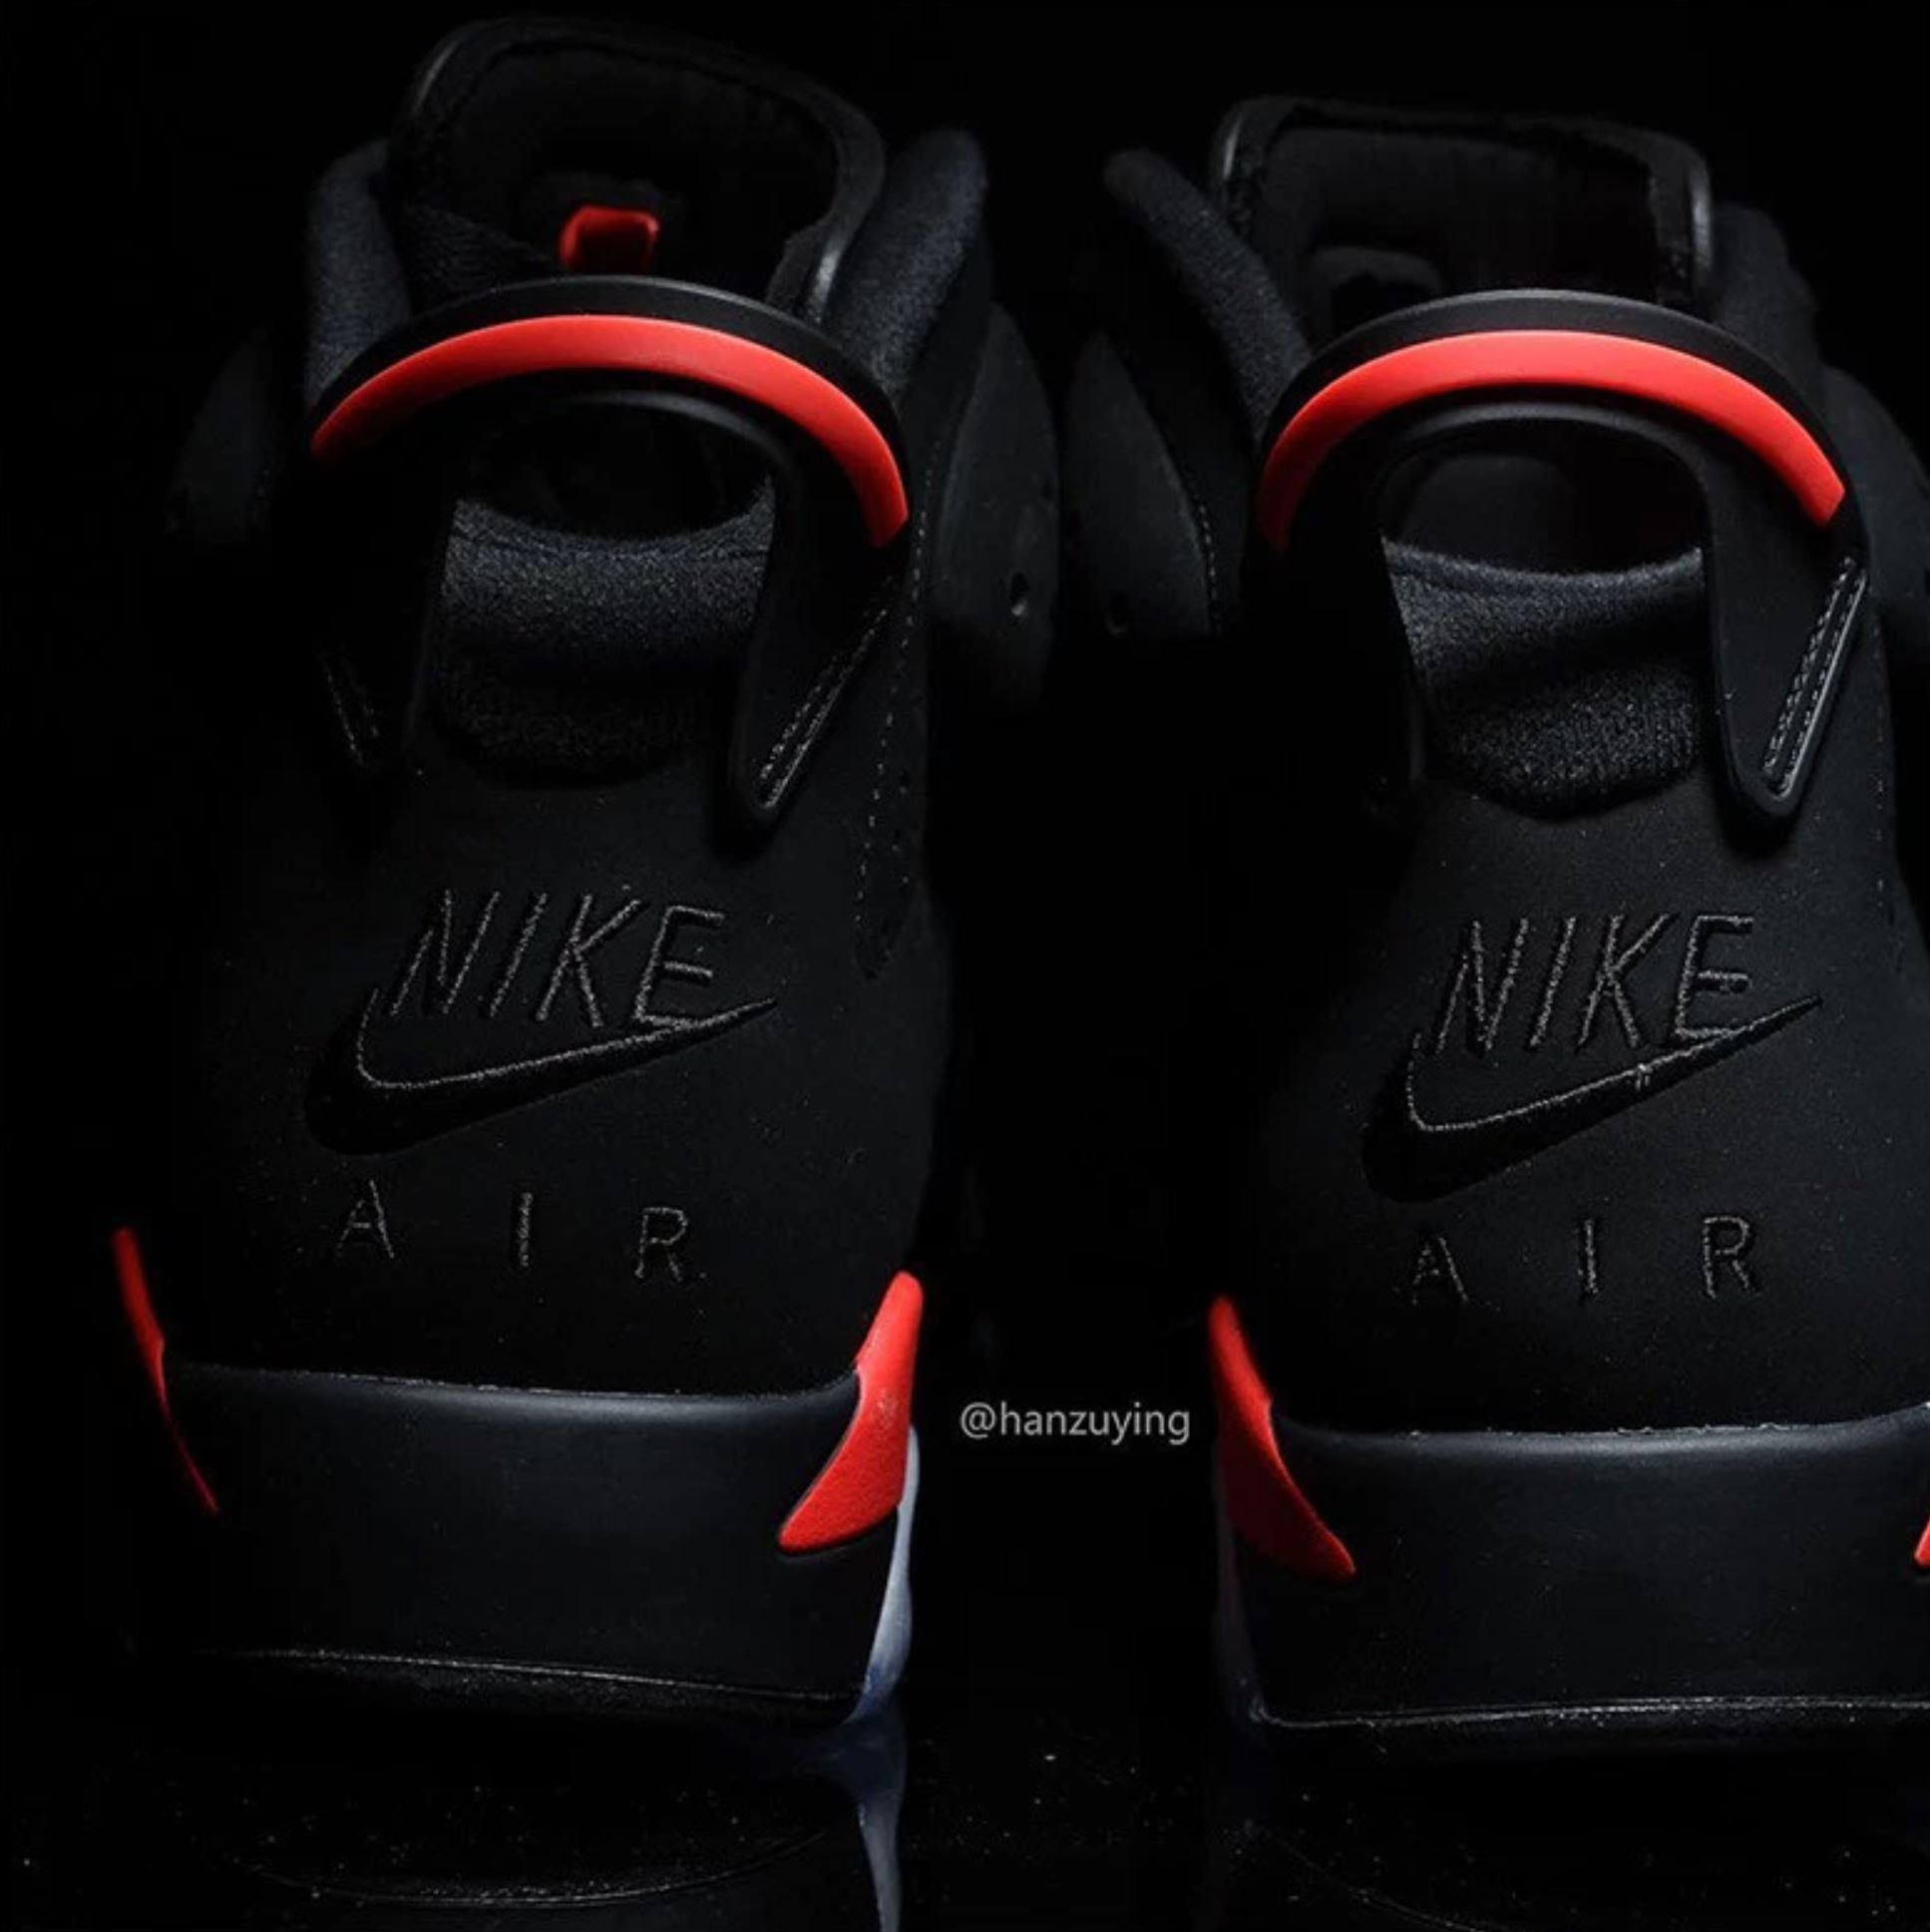 air jordan 6 black infrared nike air heelair jordan 6 black infrared nike air heel